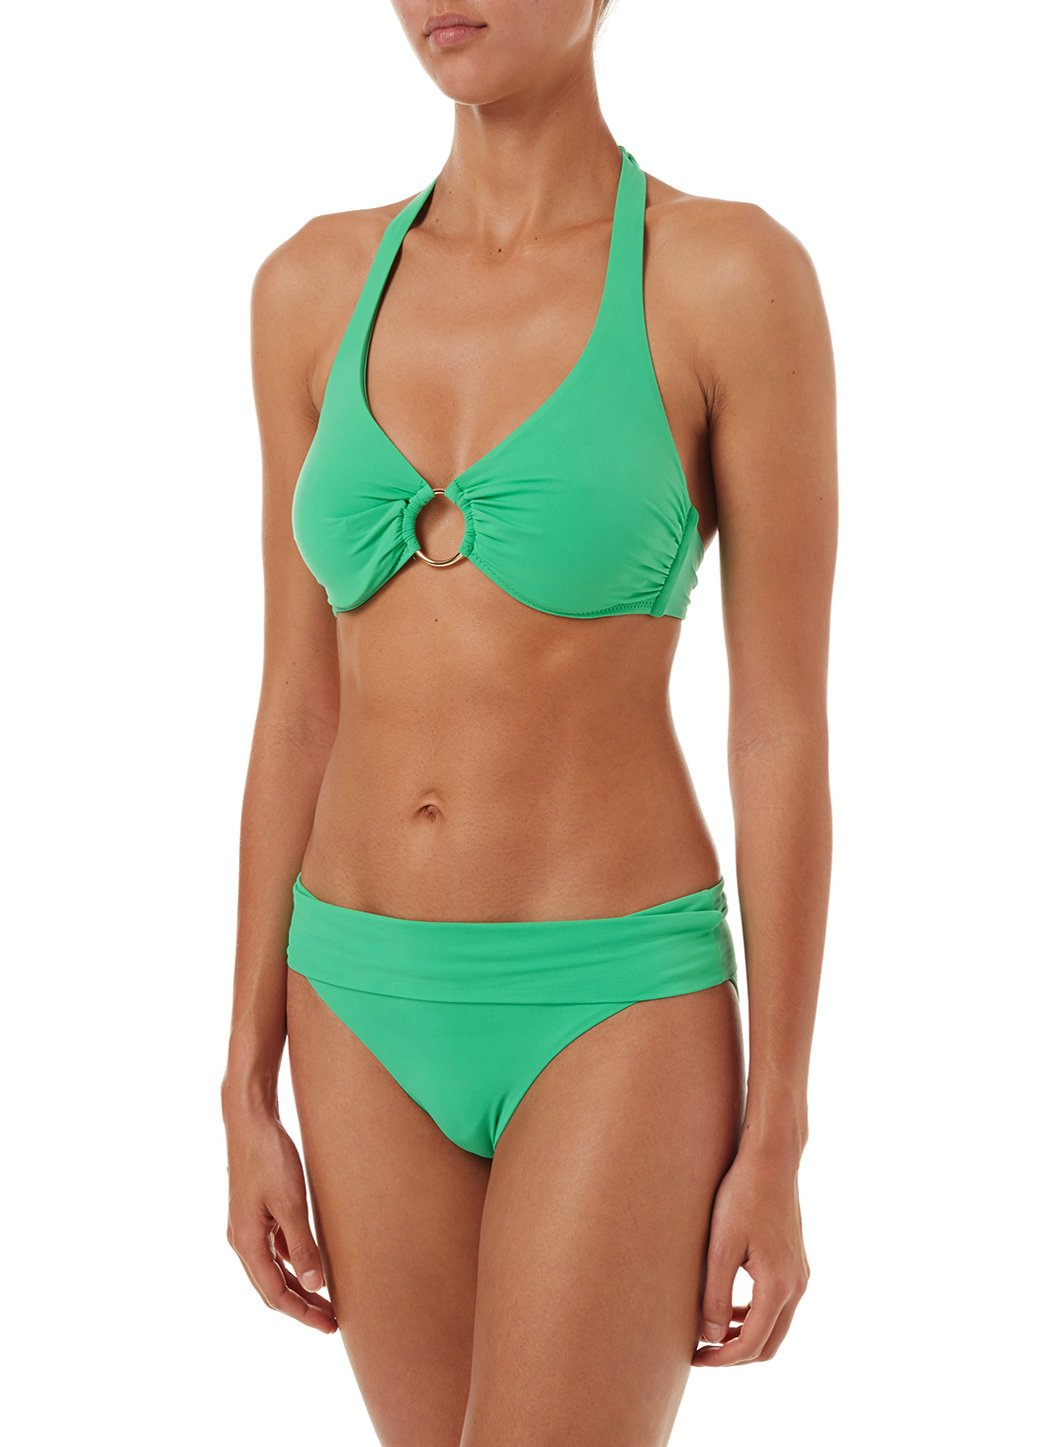 brussels green halterneck ring supportive bikini 2019 F